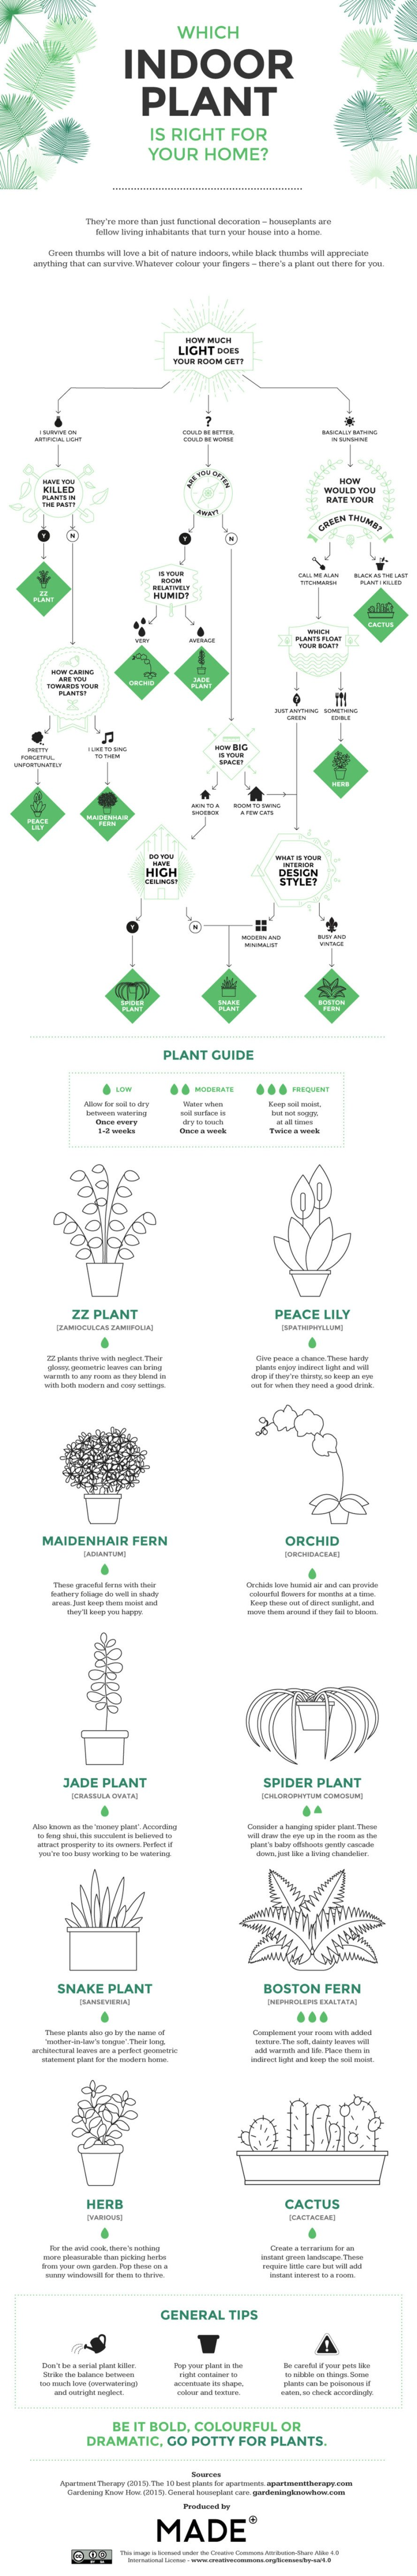 indoor plants, house plants, plant purifiers, air purifiers, houseplants, cleaning the air, speeding healing, infographic, neomam, moade.com, gardening